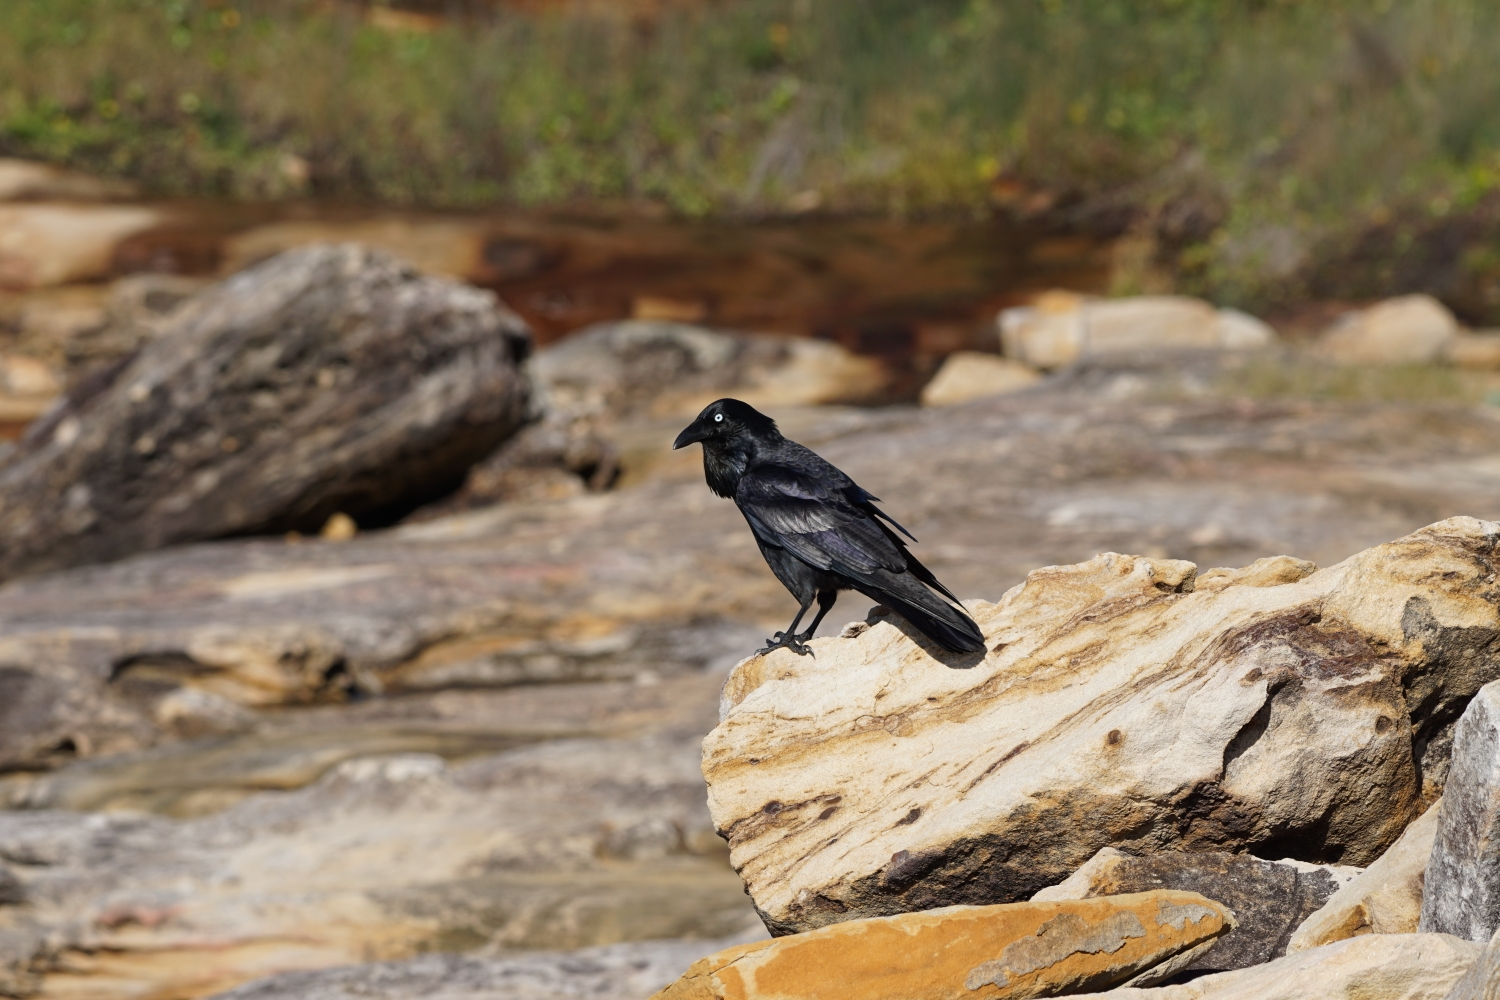 Image:  Australian raven  (Corvus coronoides) by Robbi and Elisa,  CC BY-NC